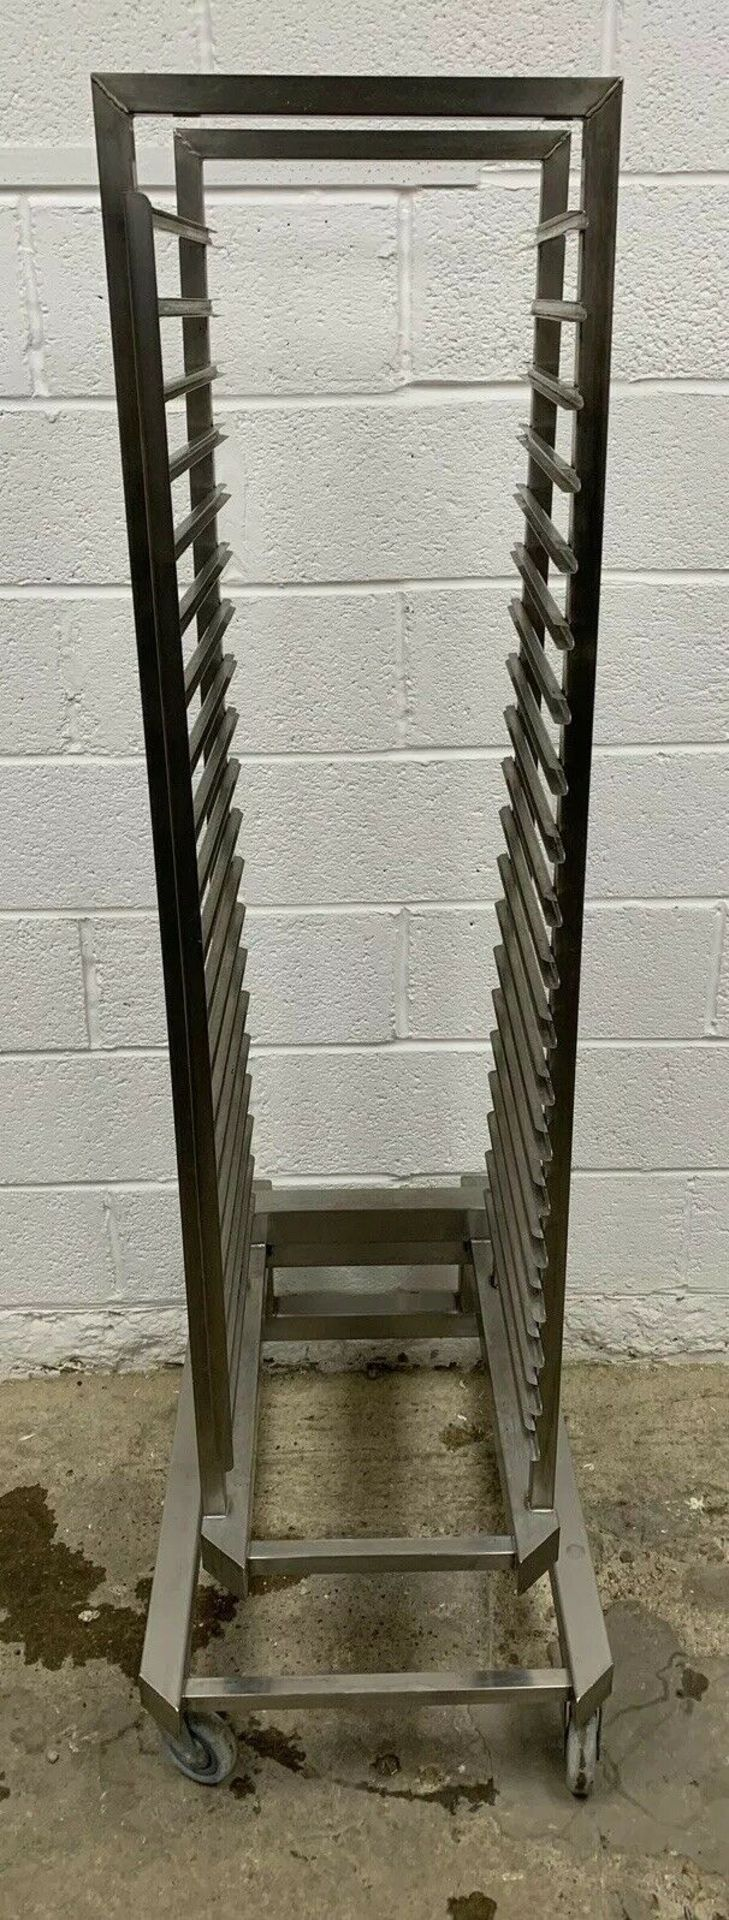 Lot 65 - Stainless Steel Roll In Trolley